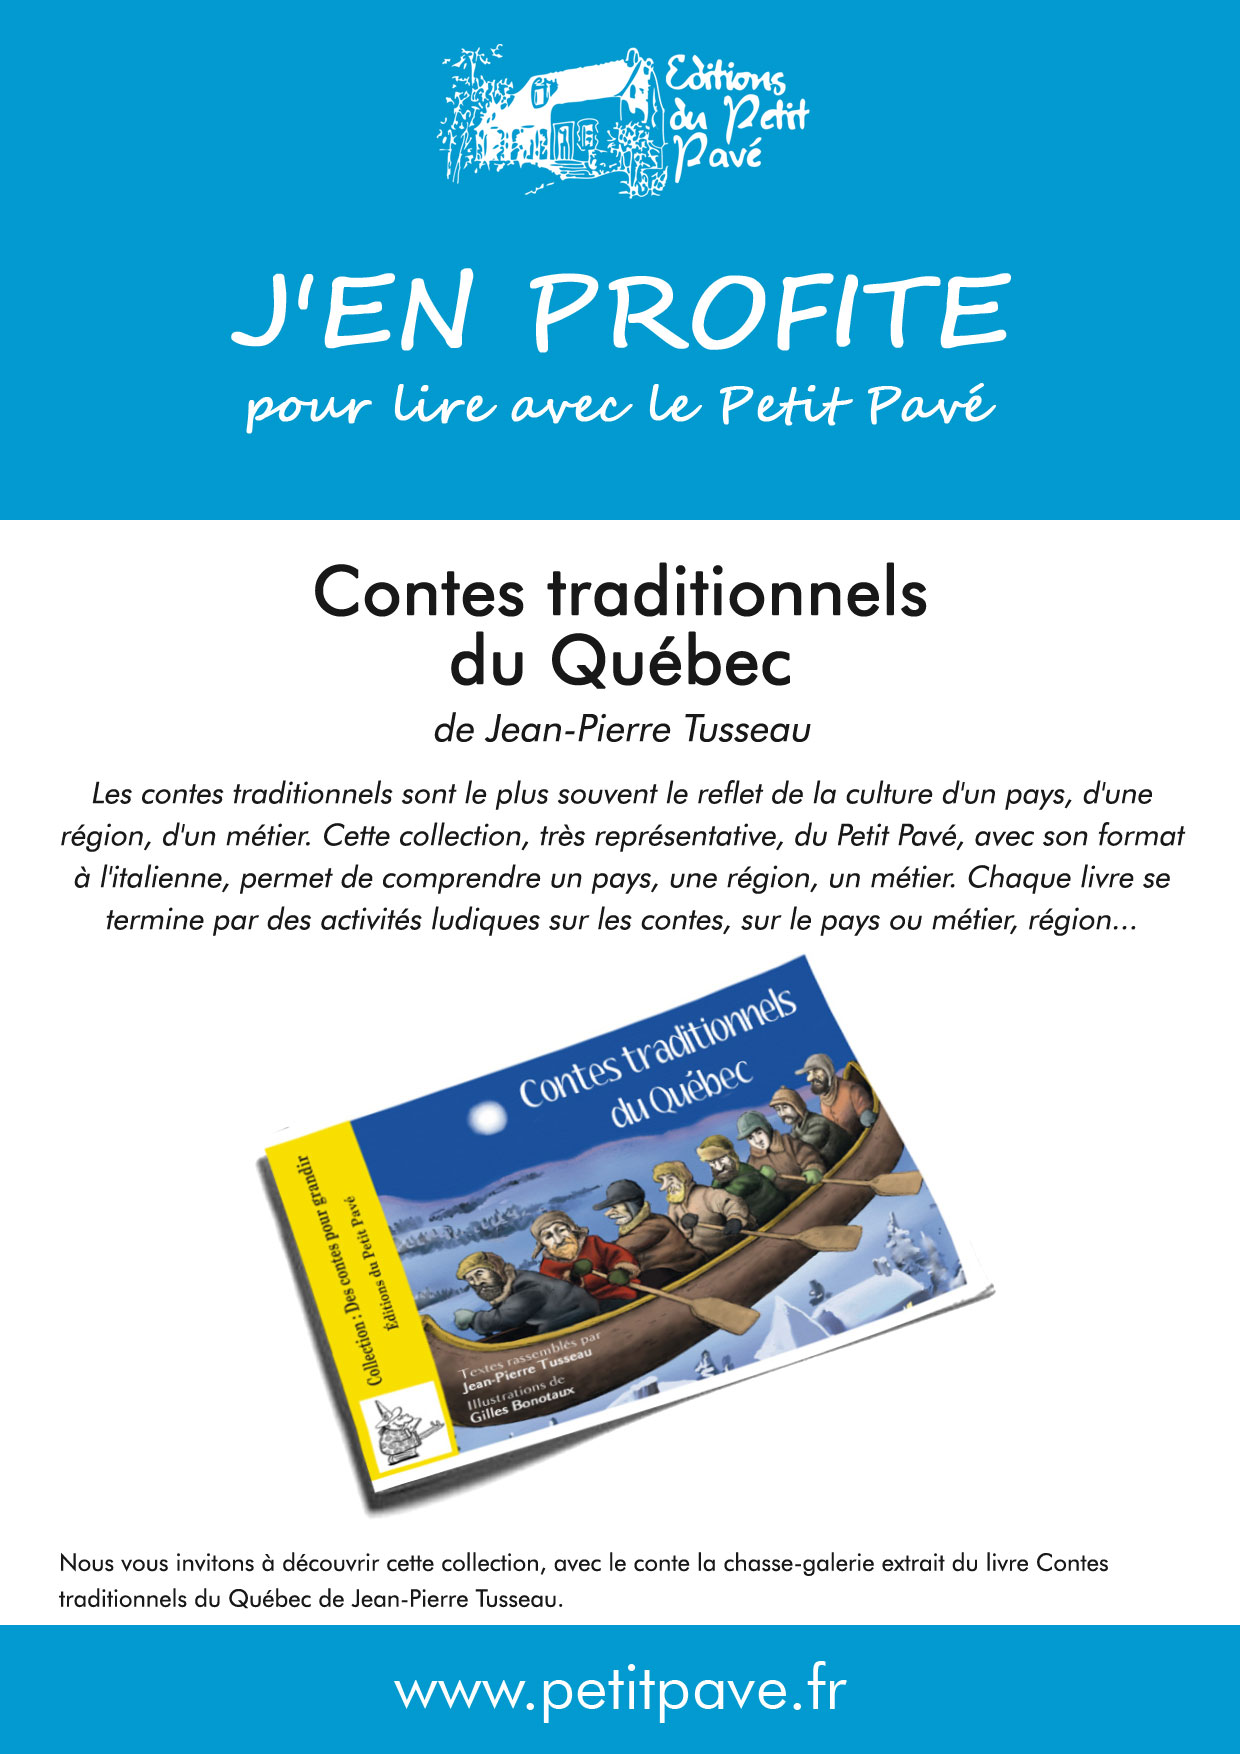 Contes traditionnels du Québec - Photo jenprofite_contes-du-quebec.jpg